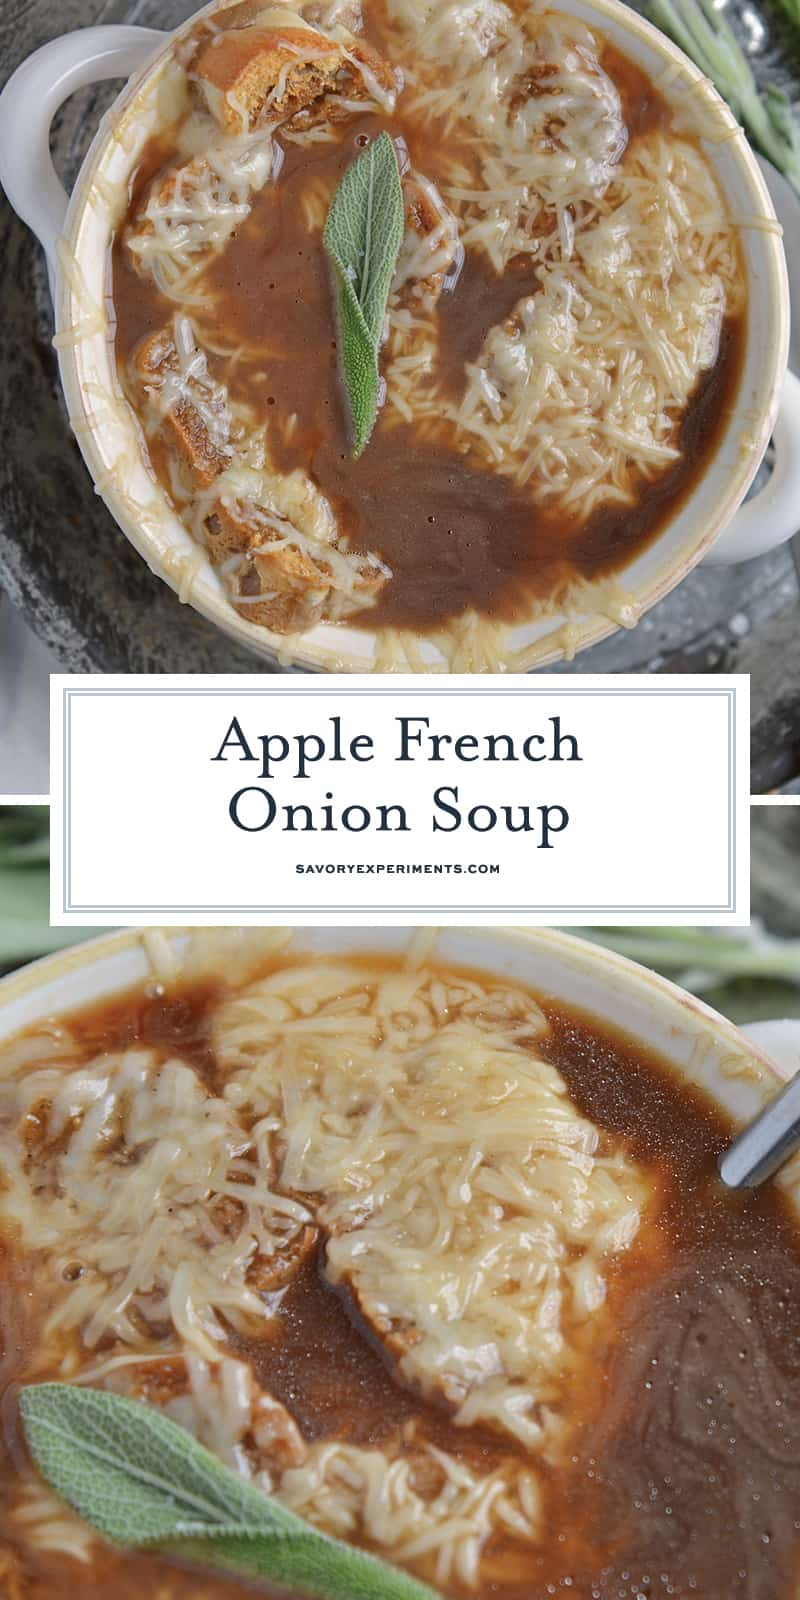 Apple French Onion Soup combines a robust French Onion Soup Recipe using sweet apples for flavor and texture. Top with crunchy garlic croutons and gooey cheese. #frenchonionsoup #fallsoup www.savoryexperiments.com